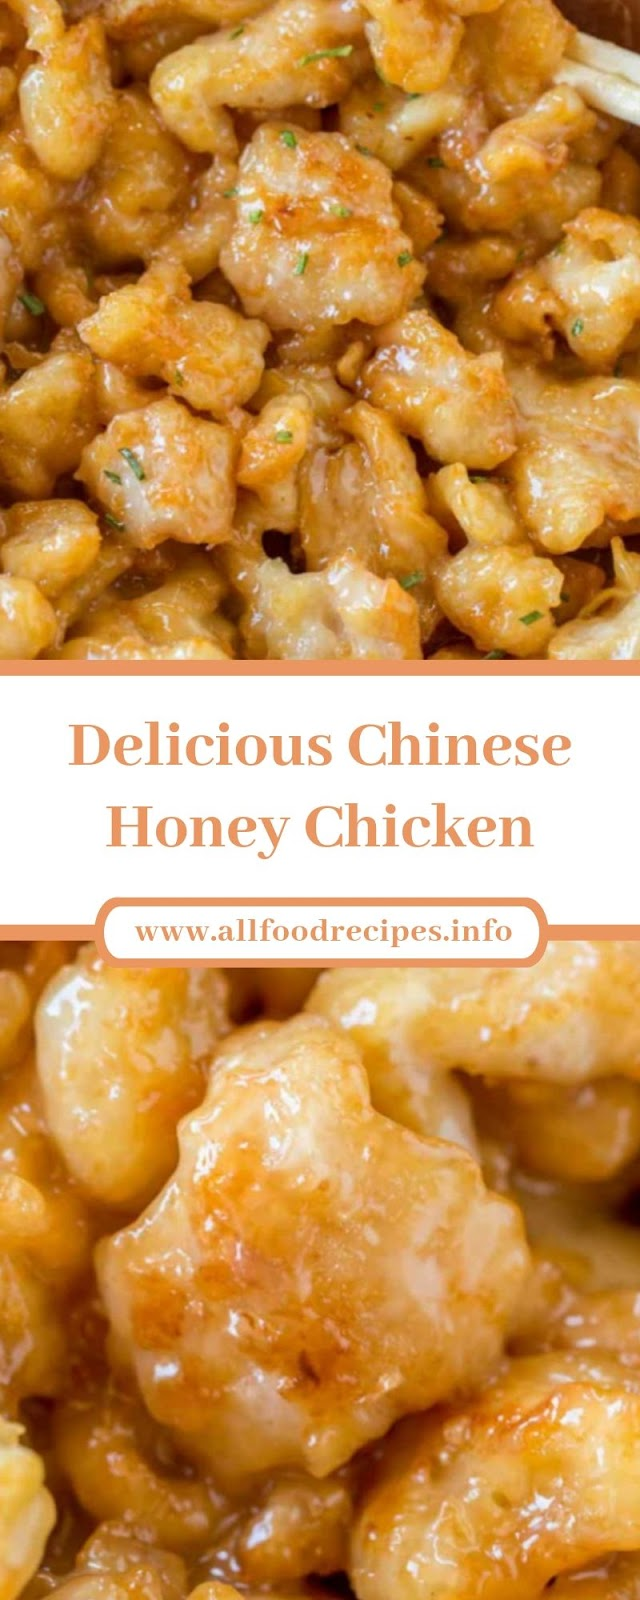 Delicious Chinese Honey Chicken